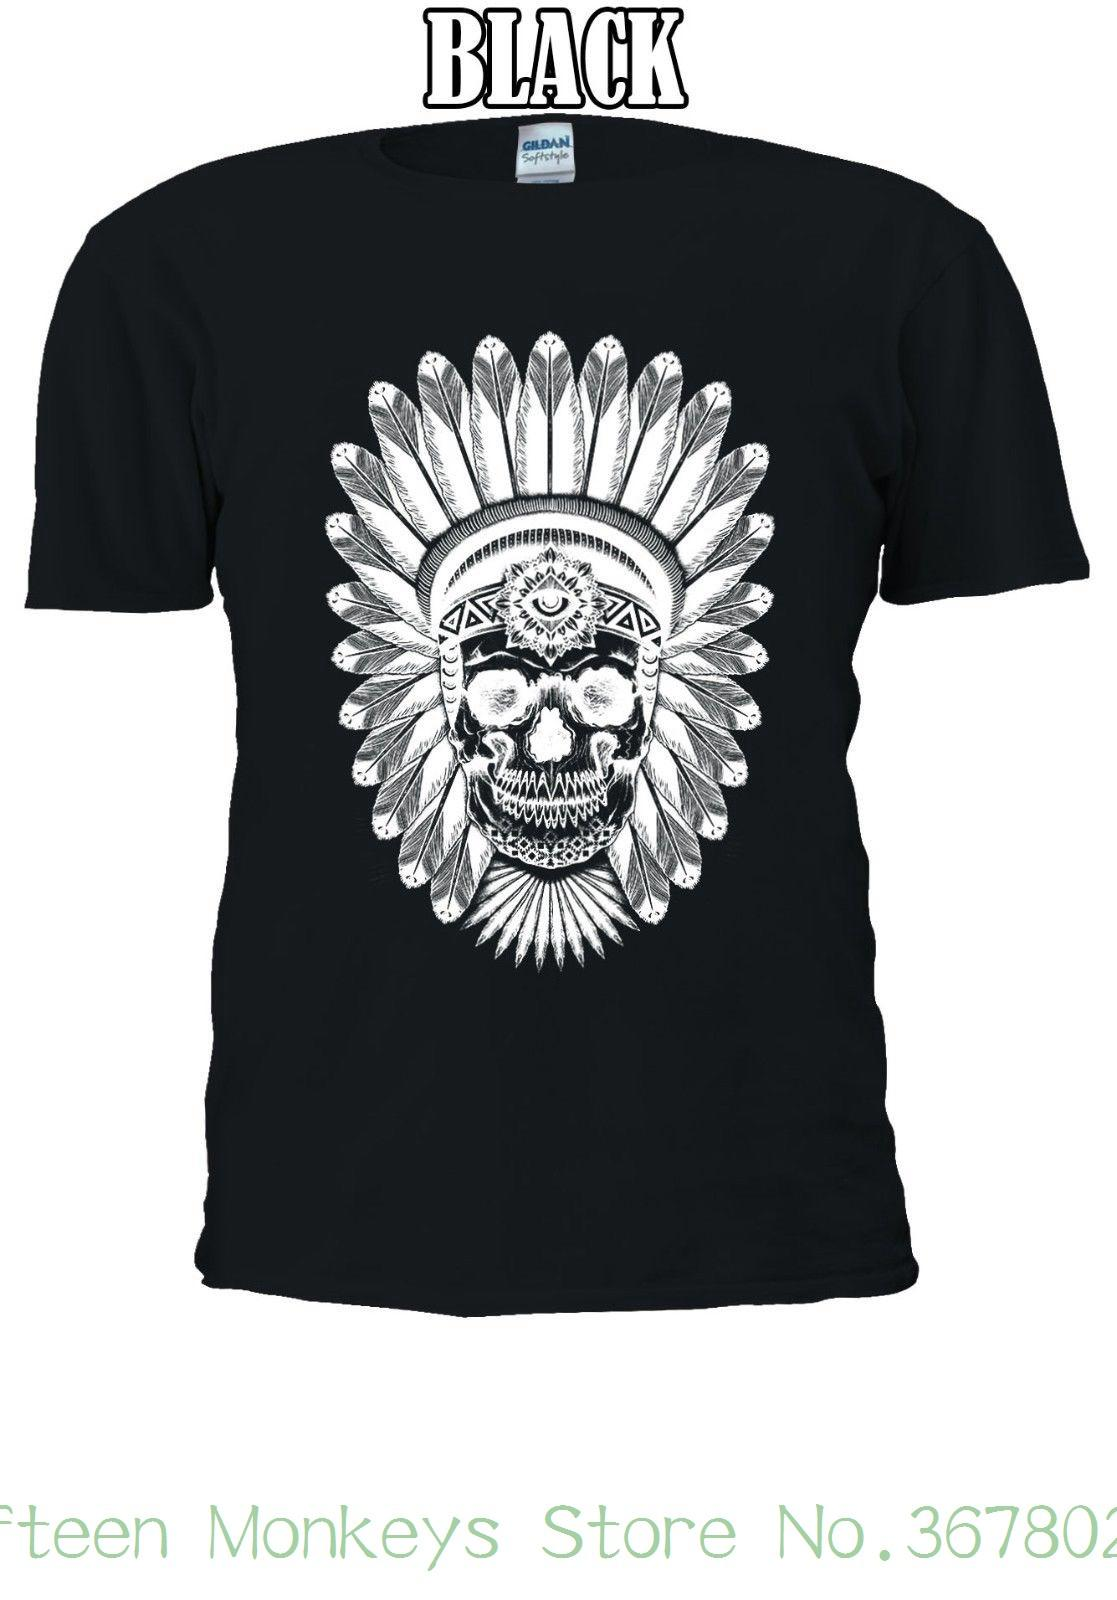 b10c90d48 Women'S Tee Indian Skull Skeleton Cool Indie T Shirt Men Women Unisex 1136  Printed Tops Popular Tees Awesome Cheap T Shirts Online Shopping For T Shirt  From ...